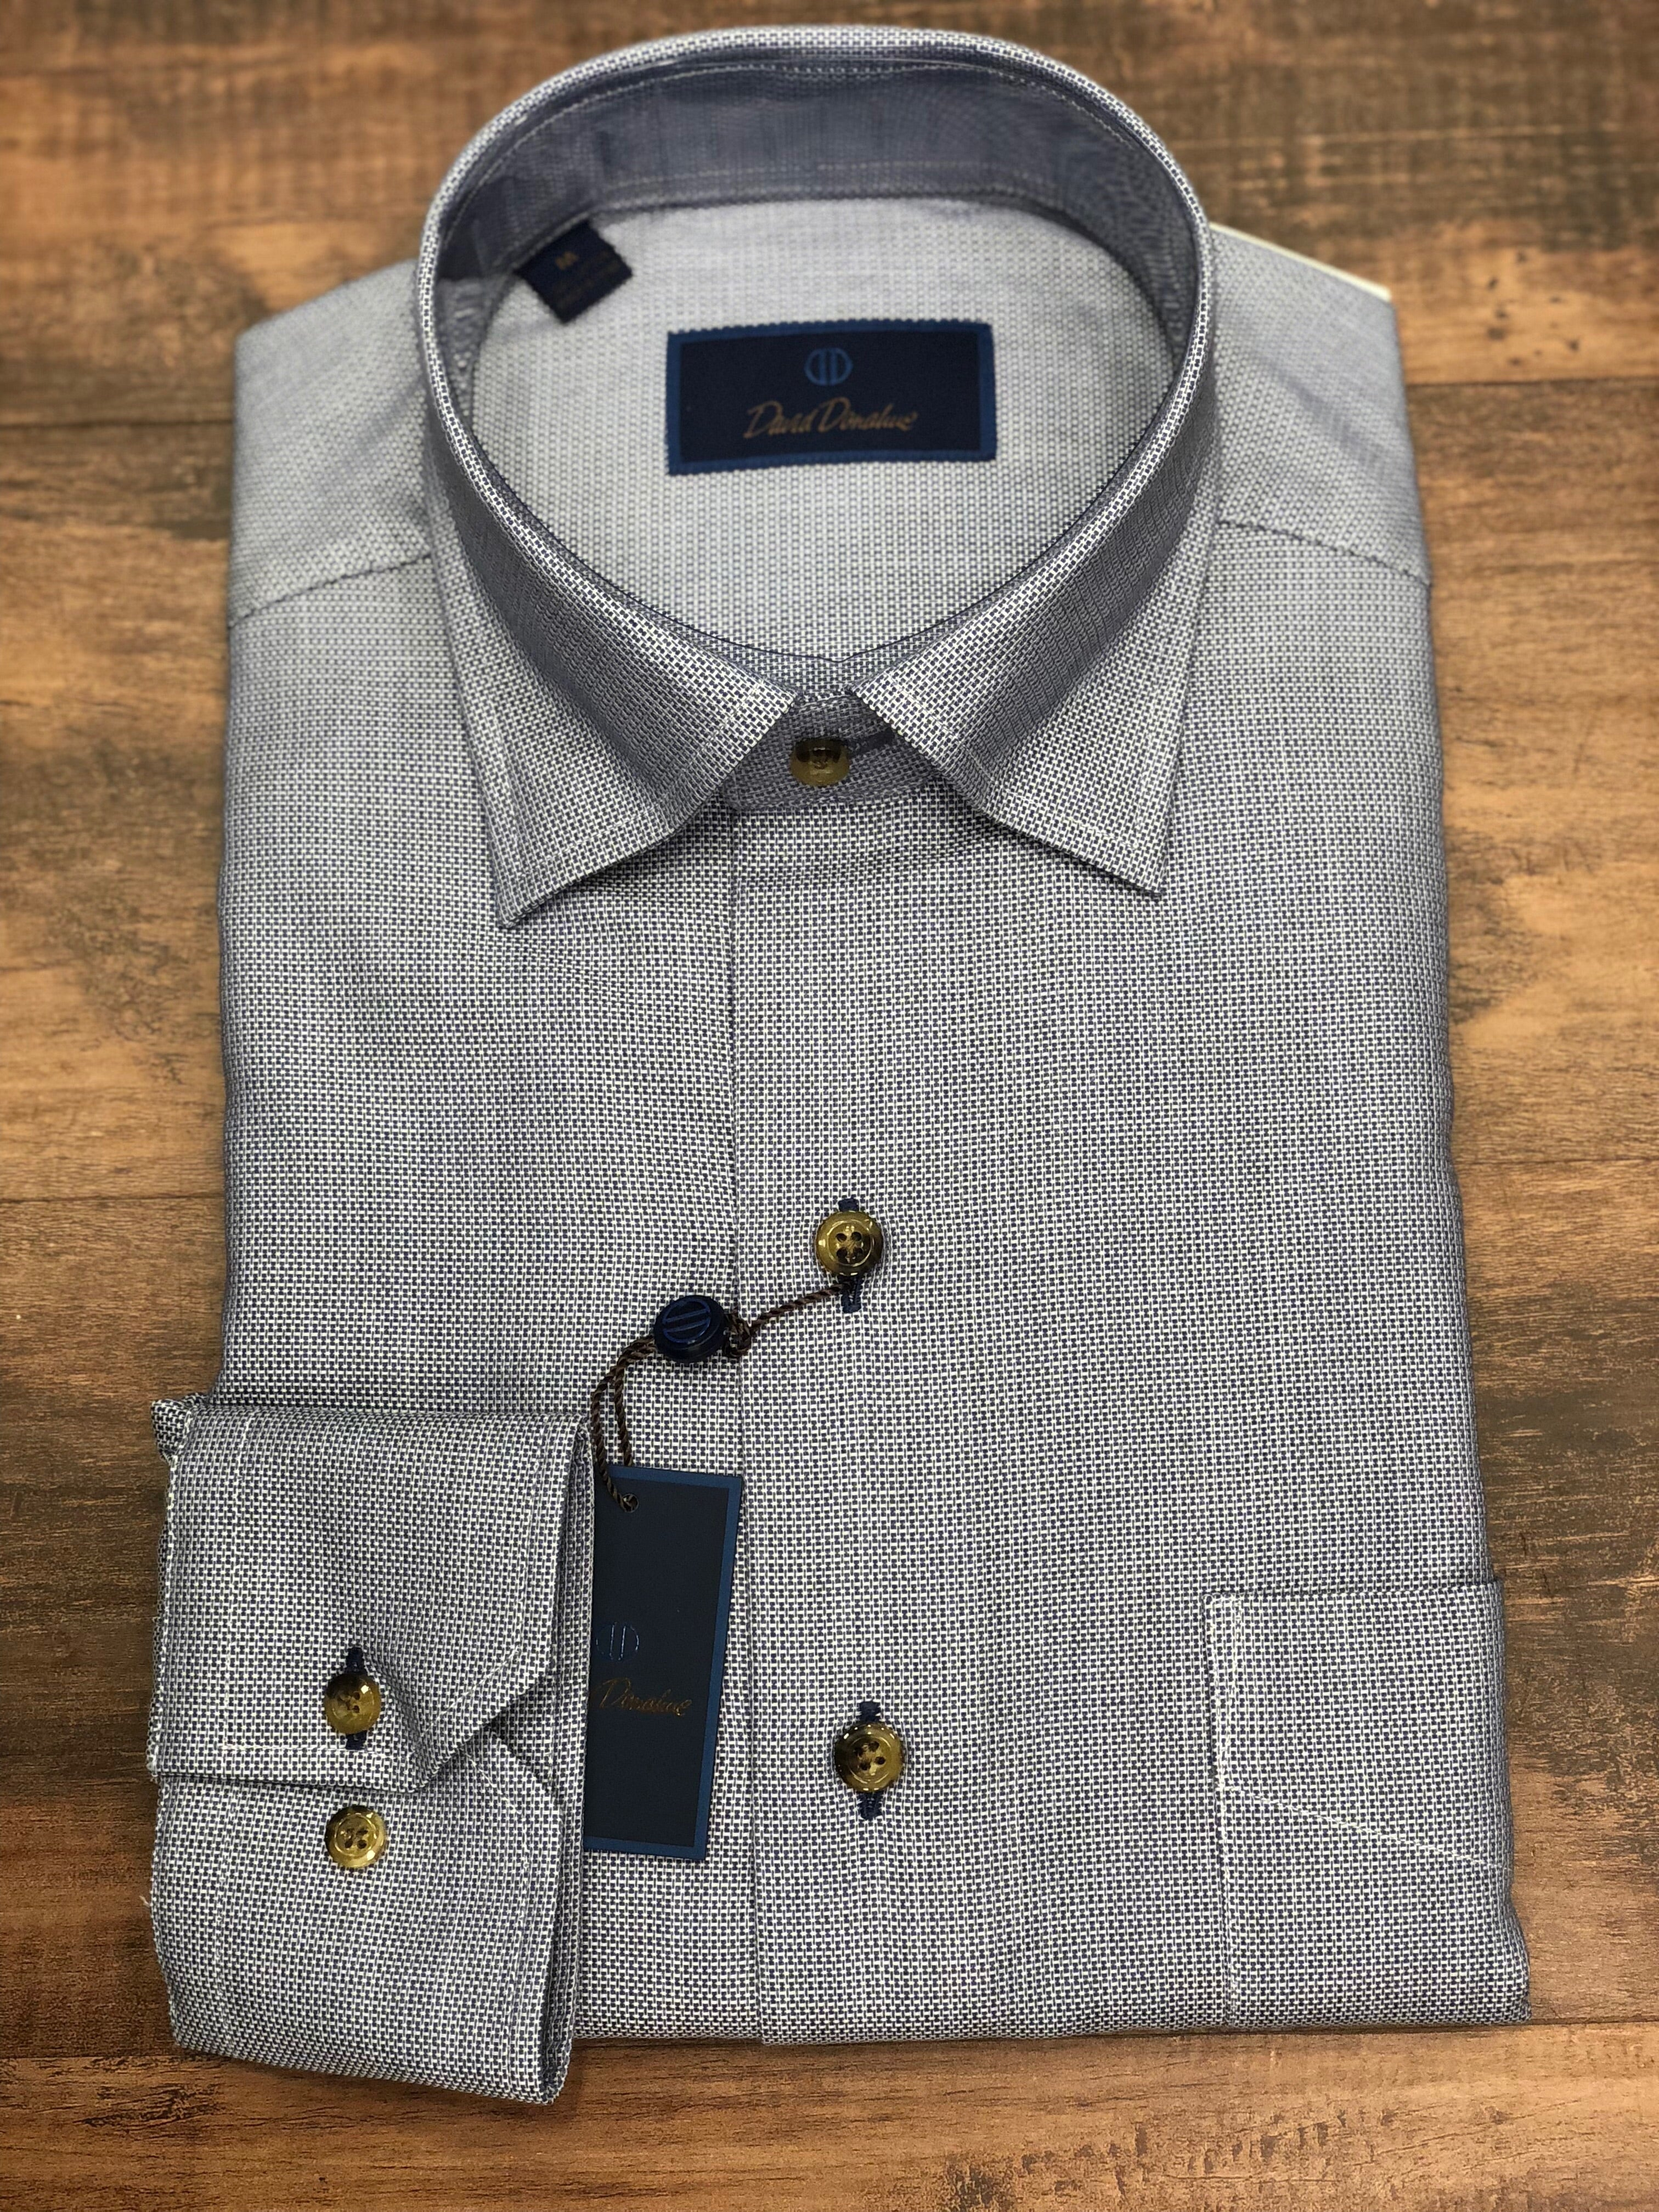 David Donahue Solid Tick Weave Sport Shirt